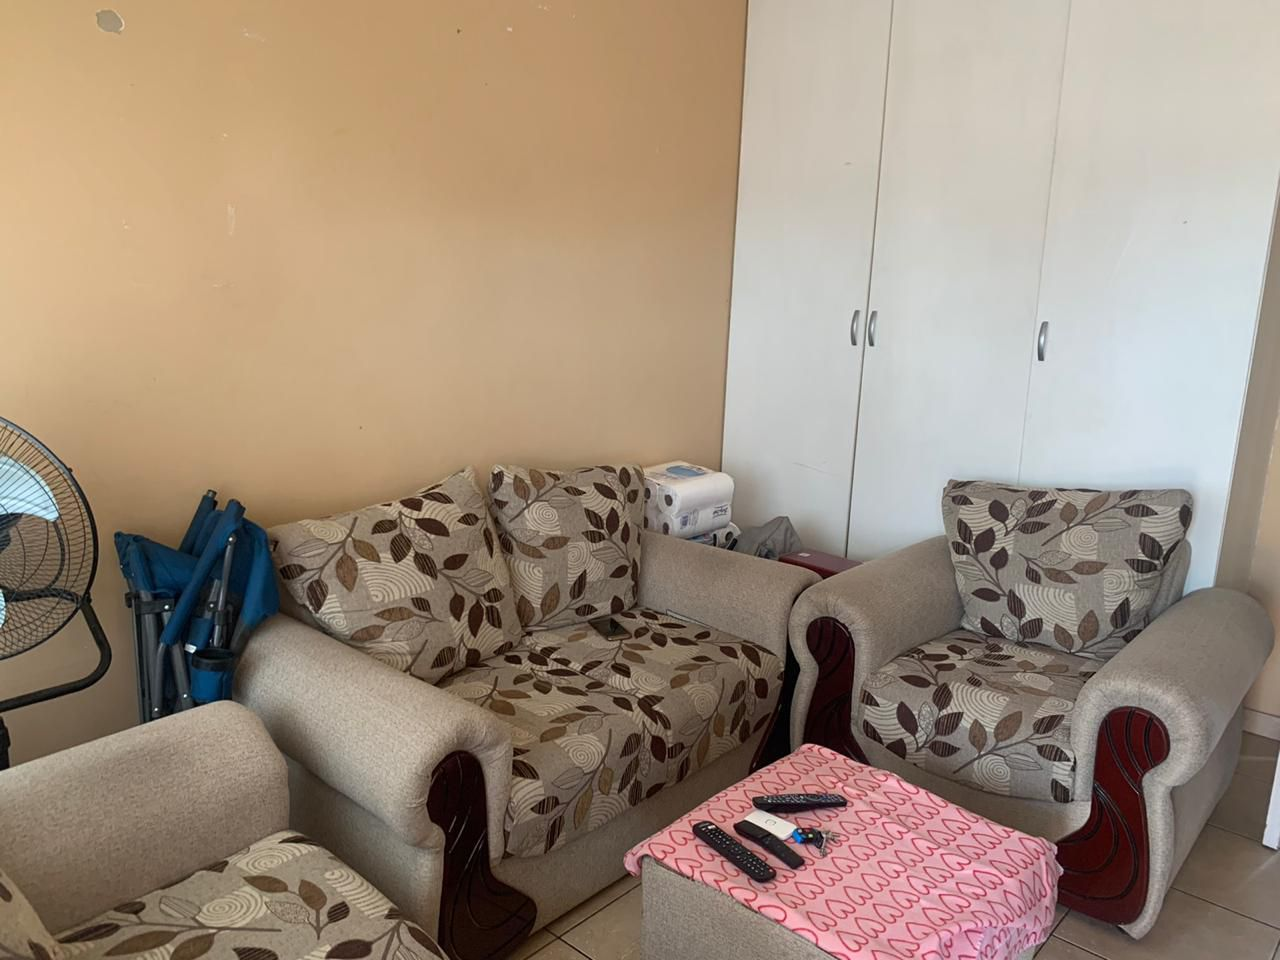 Apartment in Bult - WhatsApp Image 2019-11-19 at 16.23.20 (2).jpeg